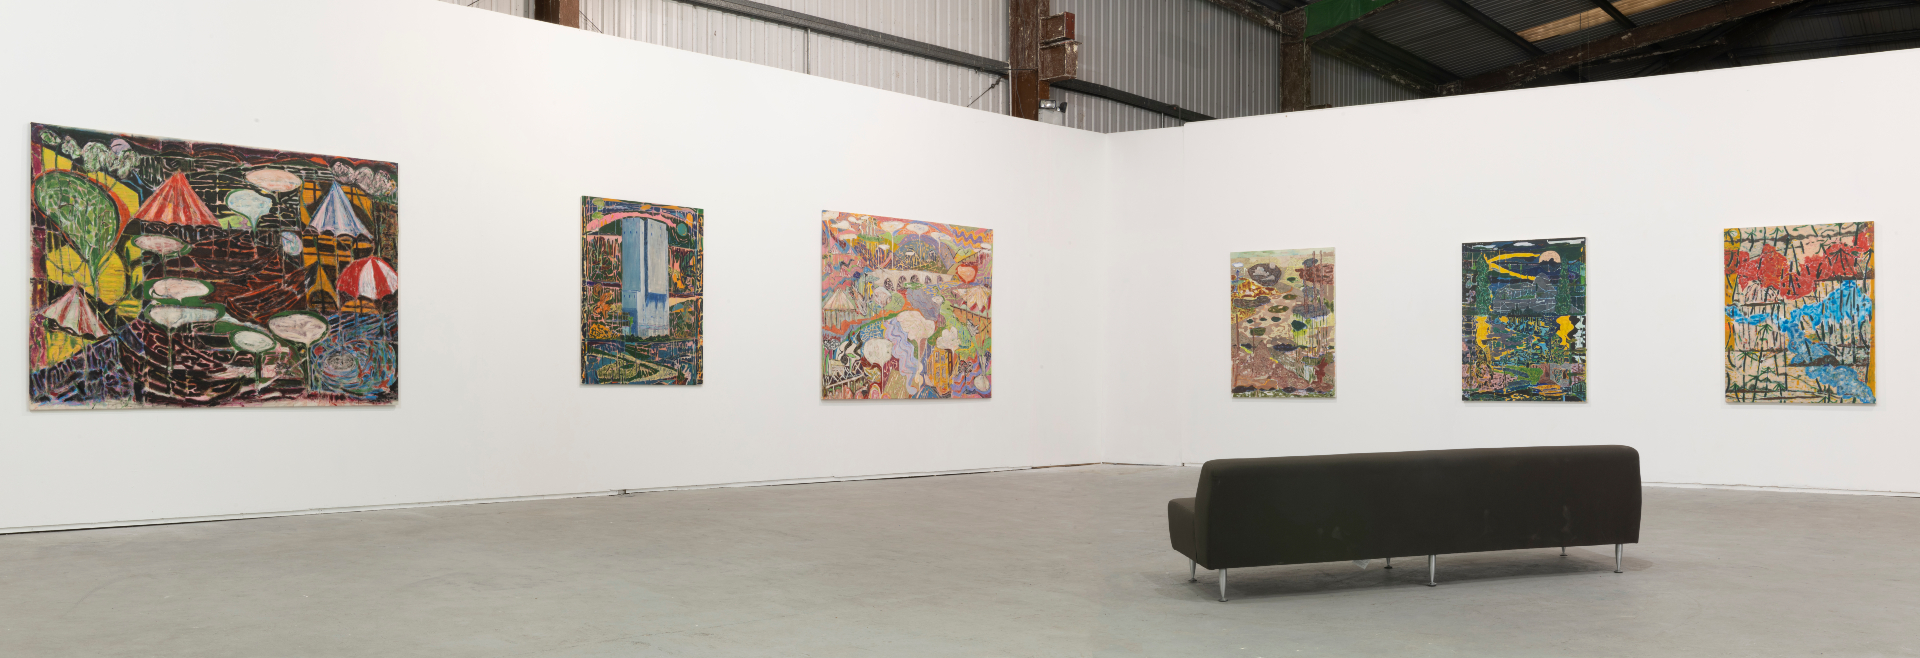 photograph of white-walled gallery space with a black sofa face six paintings